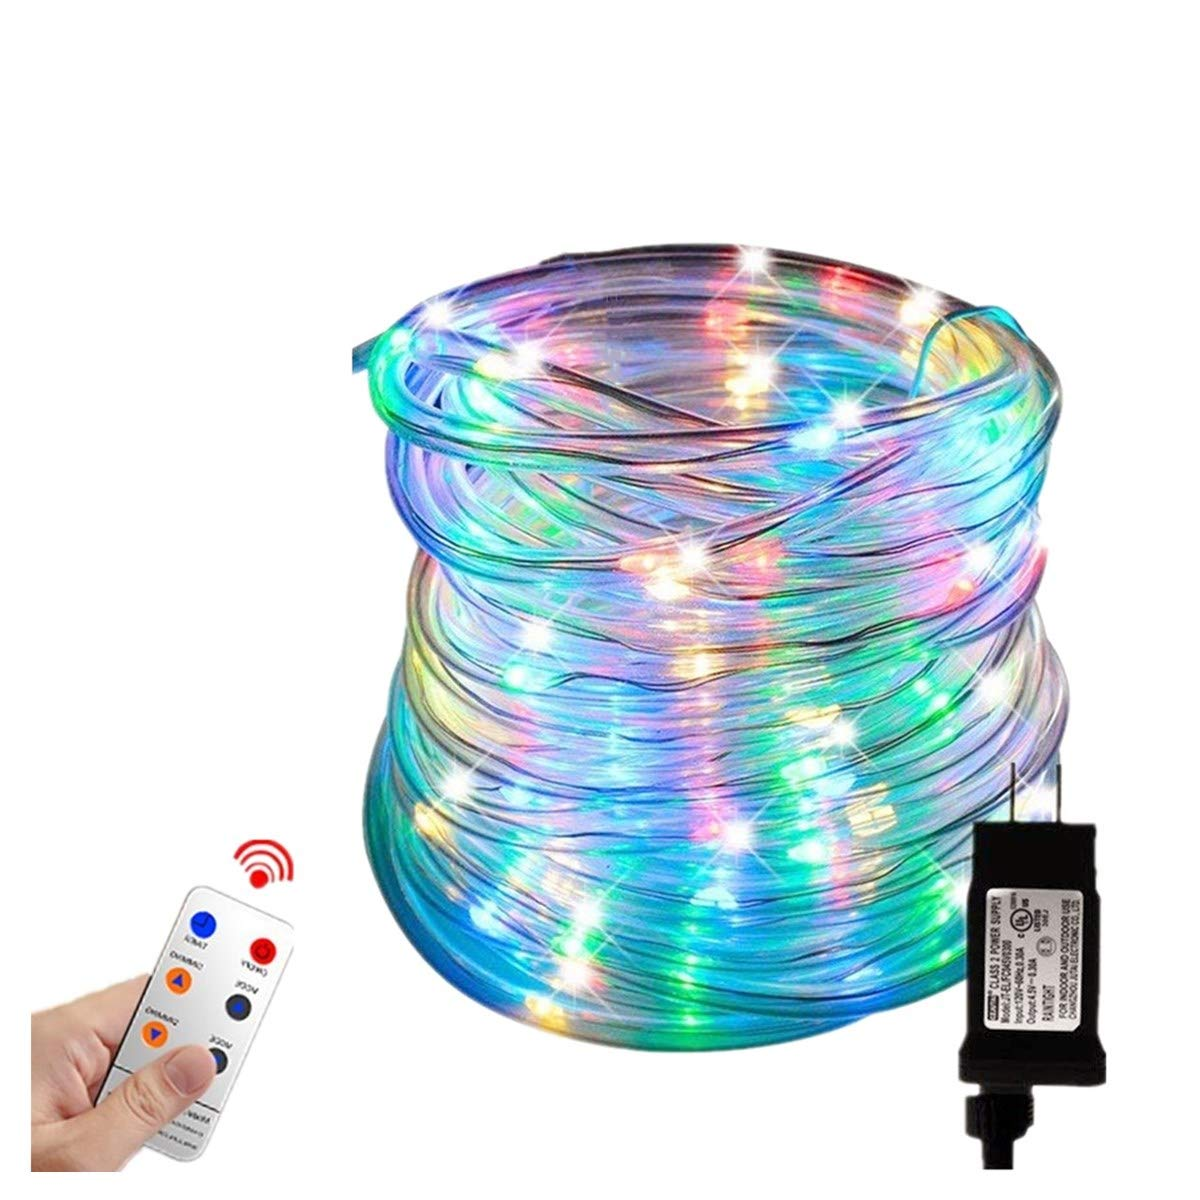 Zinuo LED String Rope Lights 33FT 136 LED Waterproof Outdoor Rope Lights, RF Remote, 8 Modes/Timer, Multi Color Patio Lights for Gardens Parties Wedding Holiday Decor (A Power Adaptor Included)